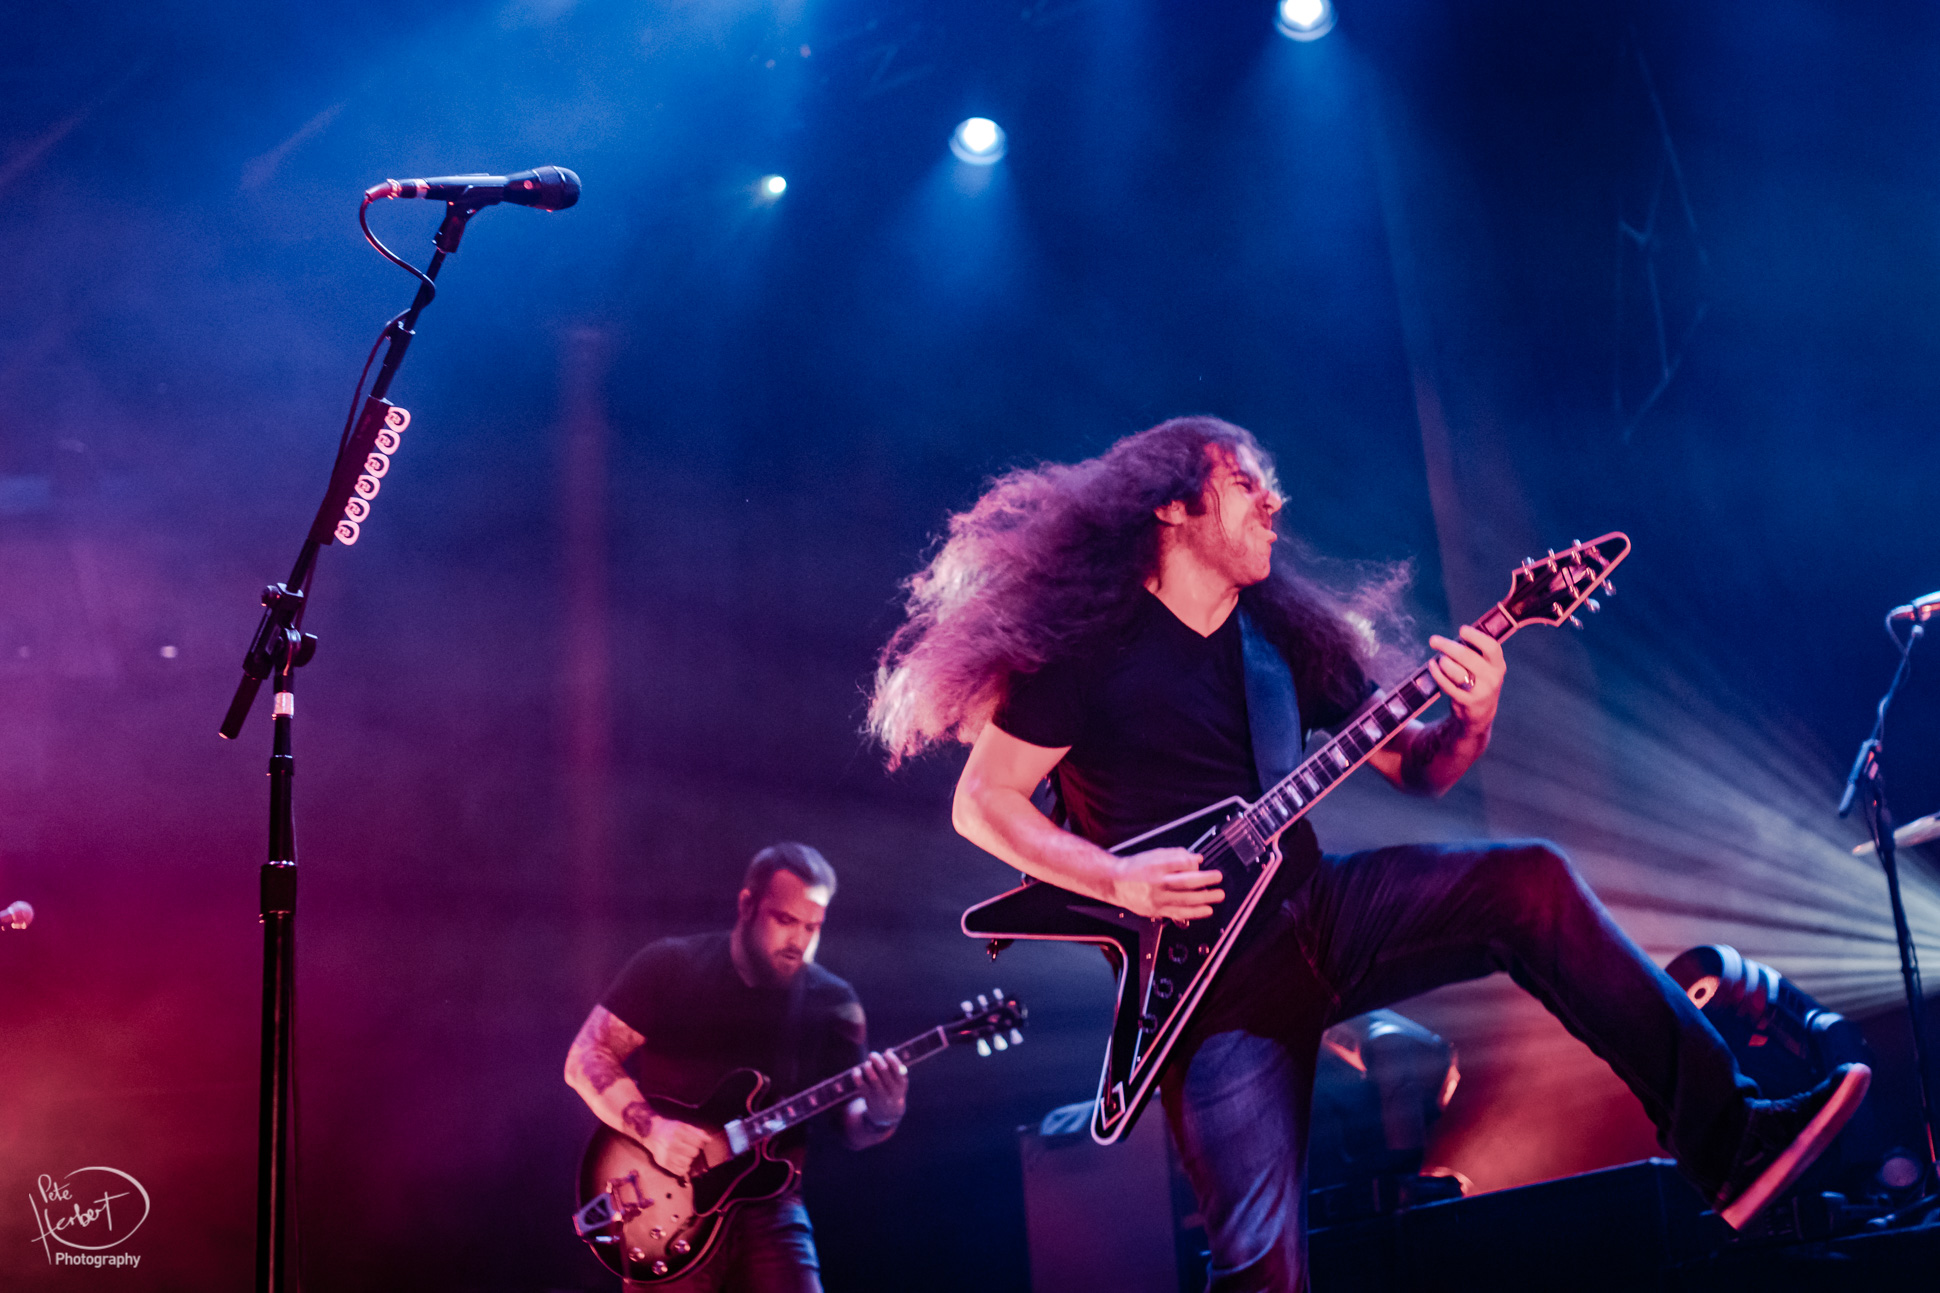 Coheed & Cambria - The Roundhouse - 16.10.18 - London-21.JPG